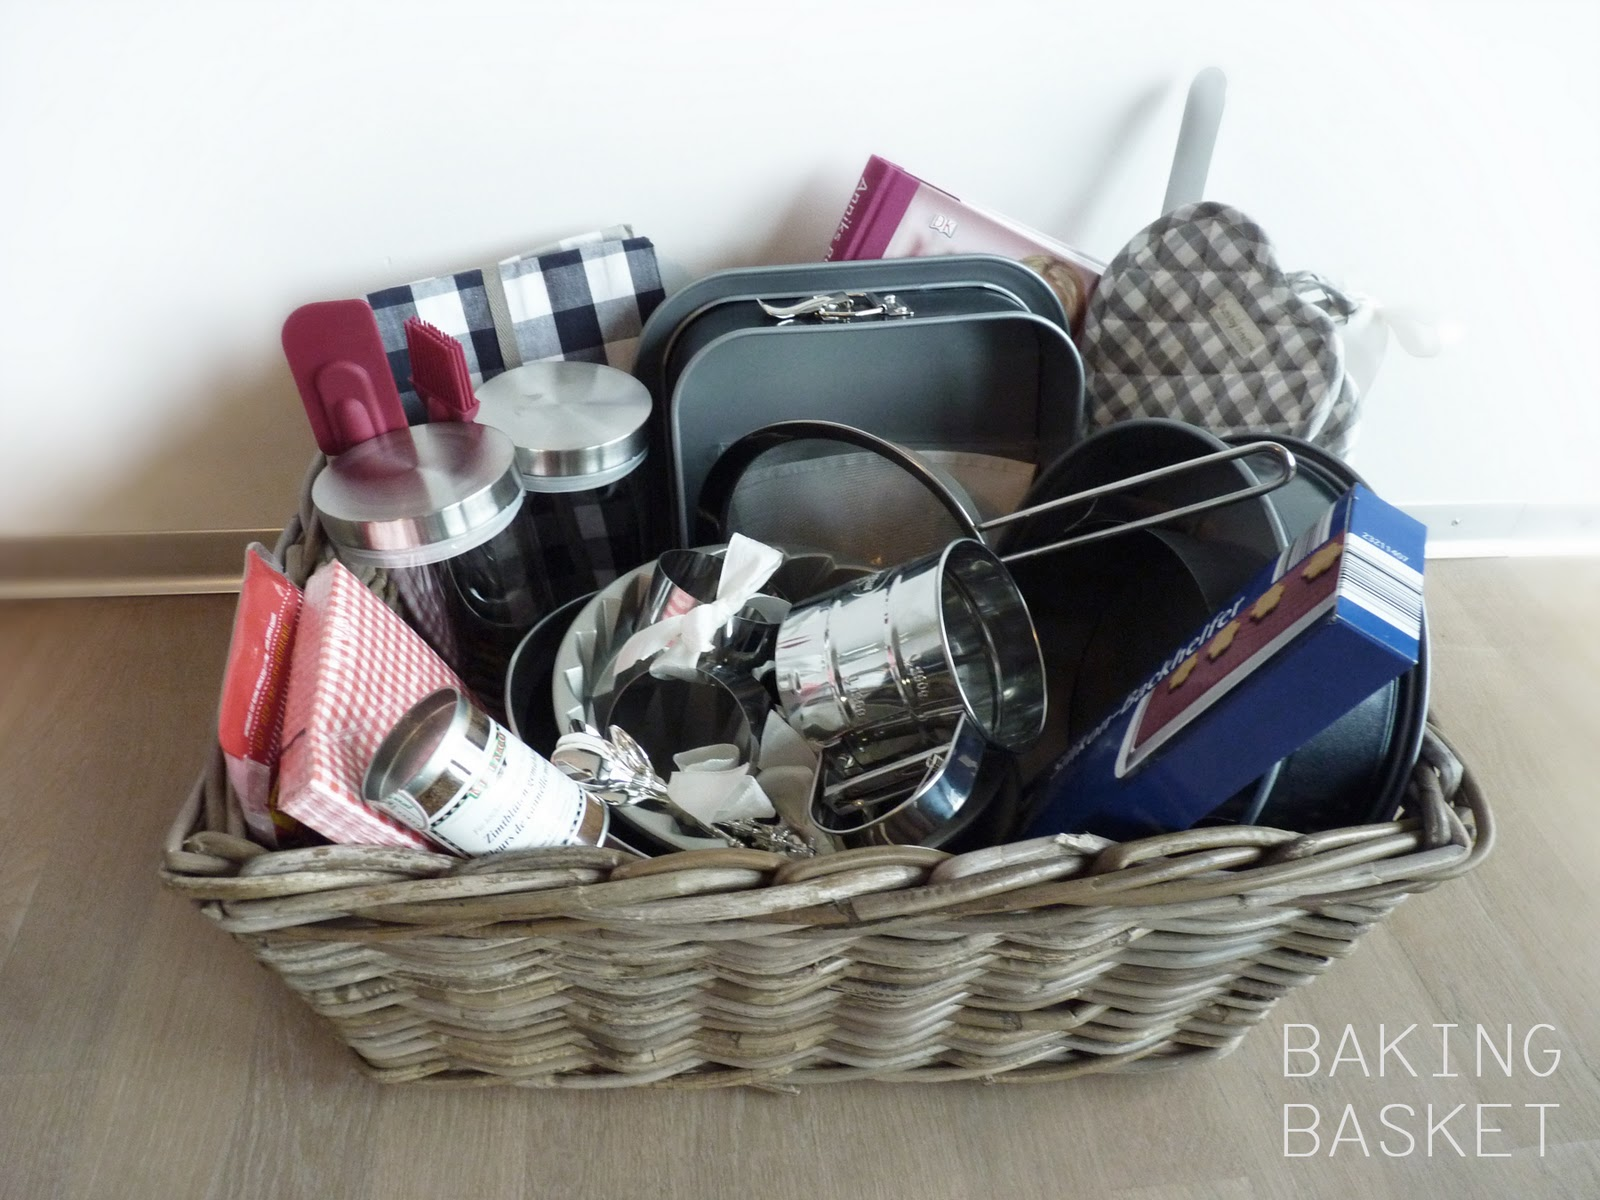 my mom gave me the most surprising and ridiculously perfect gift for my birthday a baking gift basket full of all the utensils the professional baker and ... & baking basket u2013 fork and flower